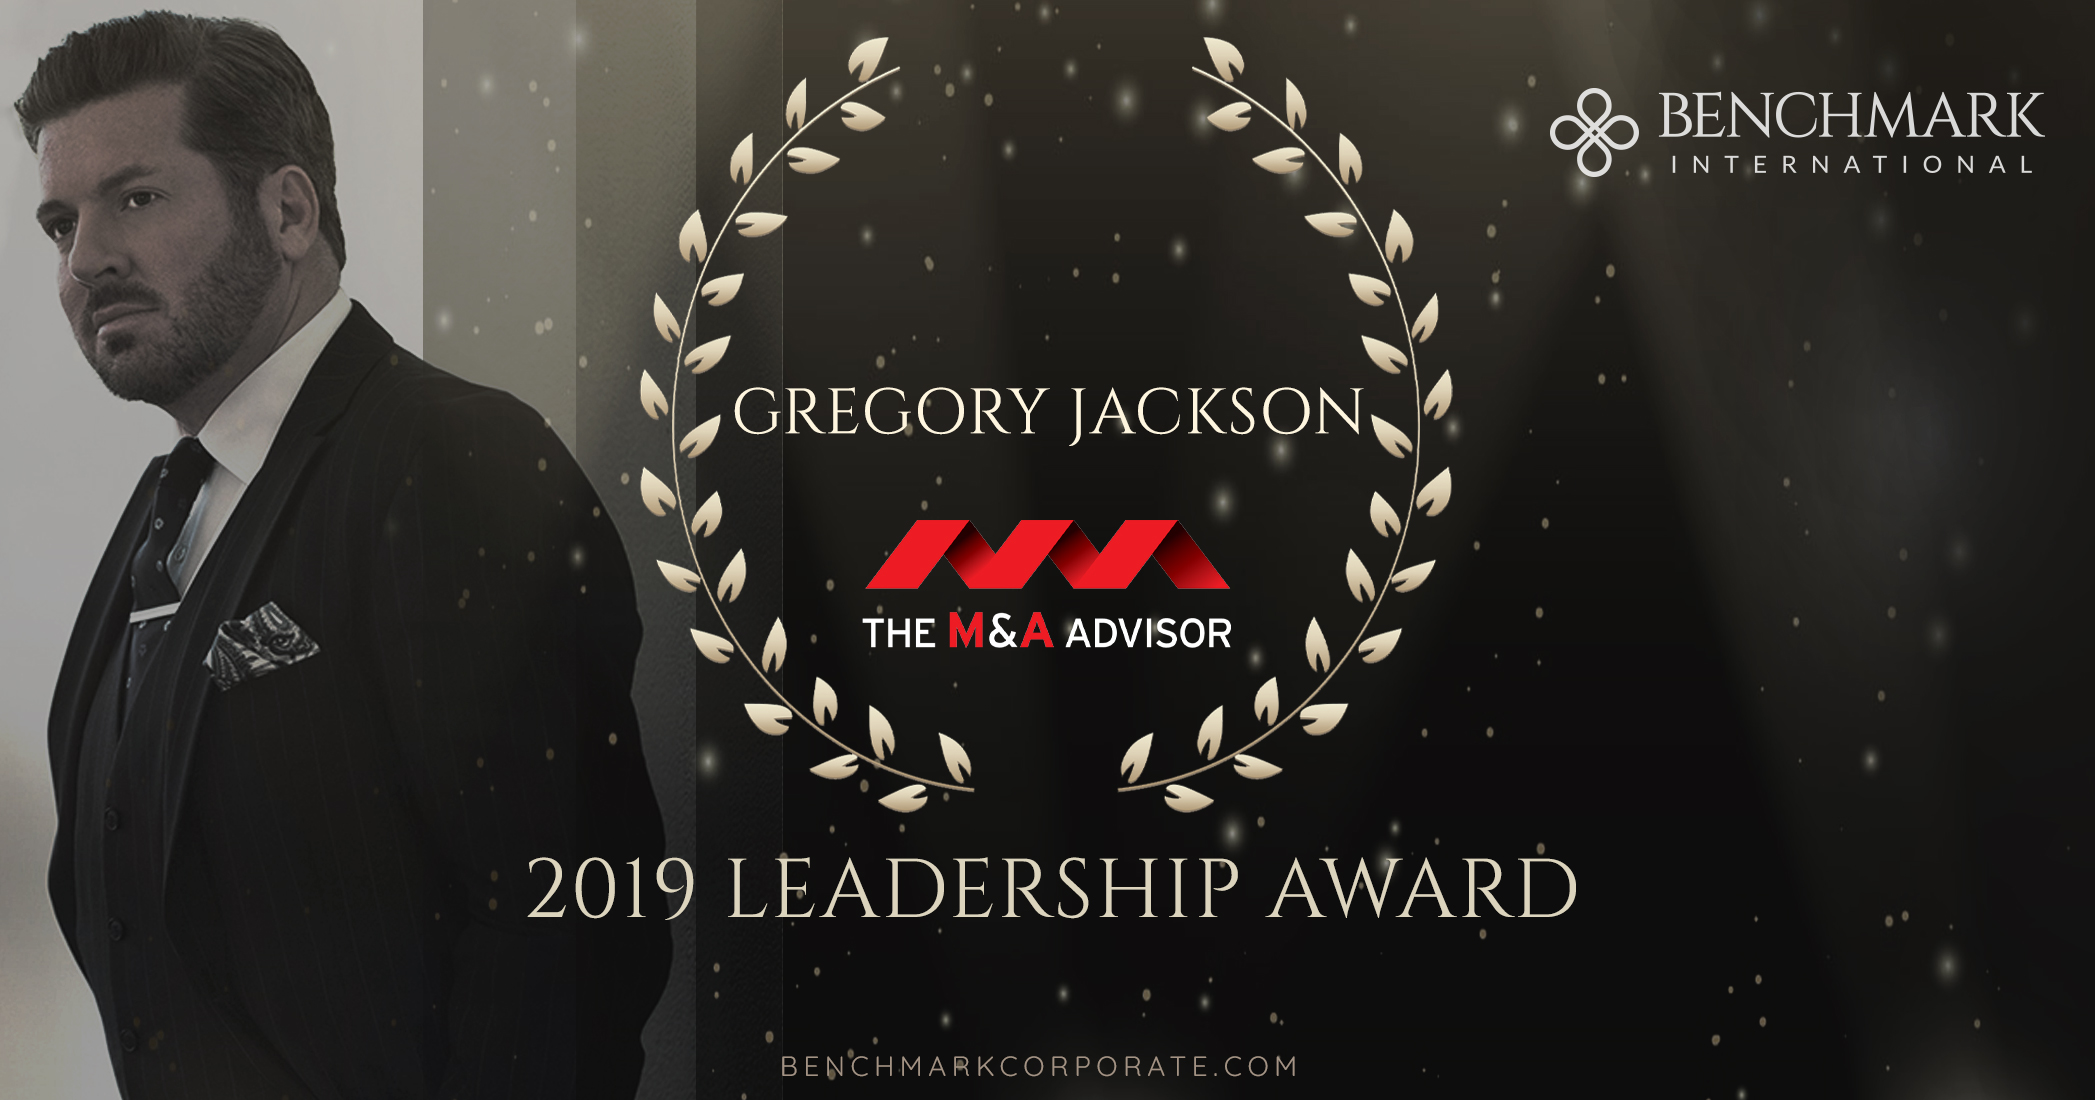 Global CEO, Gregory Jackson, named a recipient of the 2019 Leadership Award from M&A Advisor